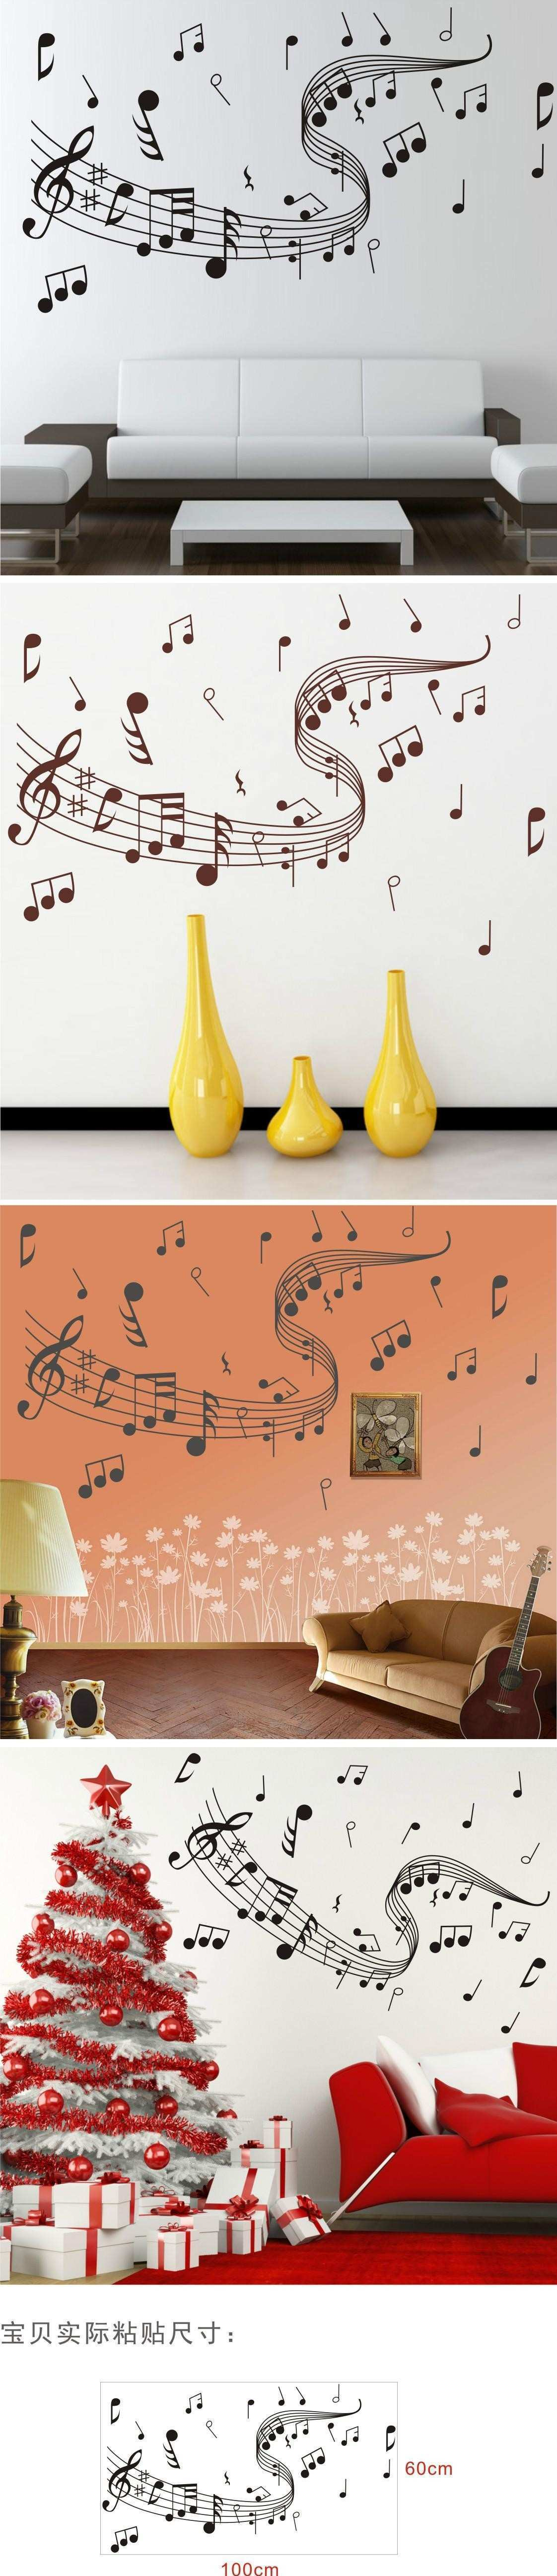 45 Best Family Wall Stickers